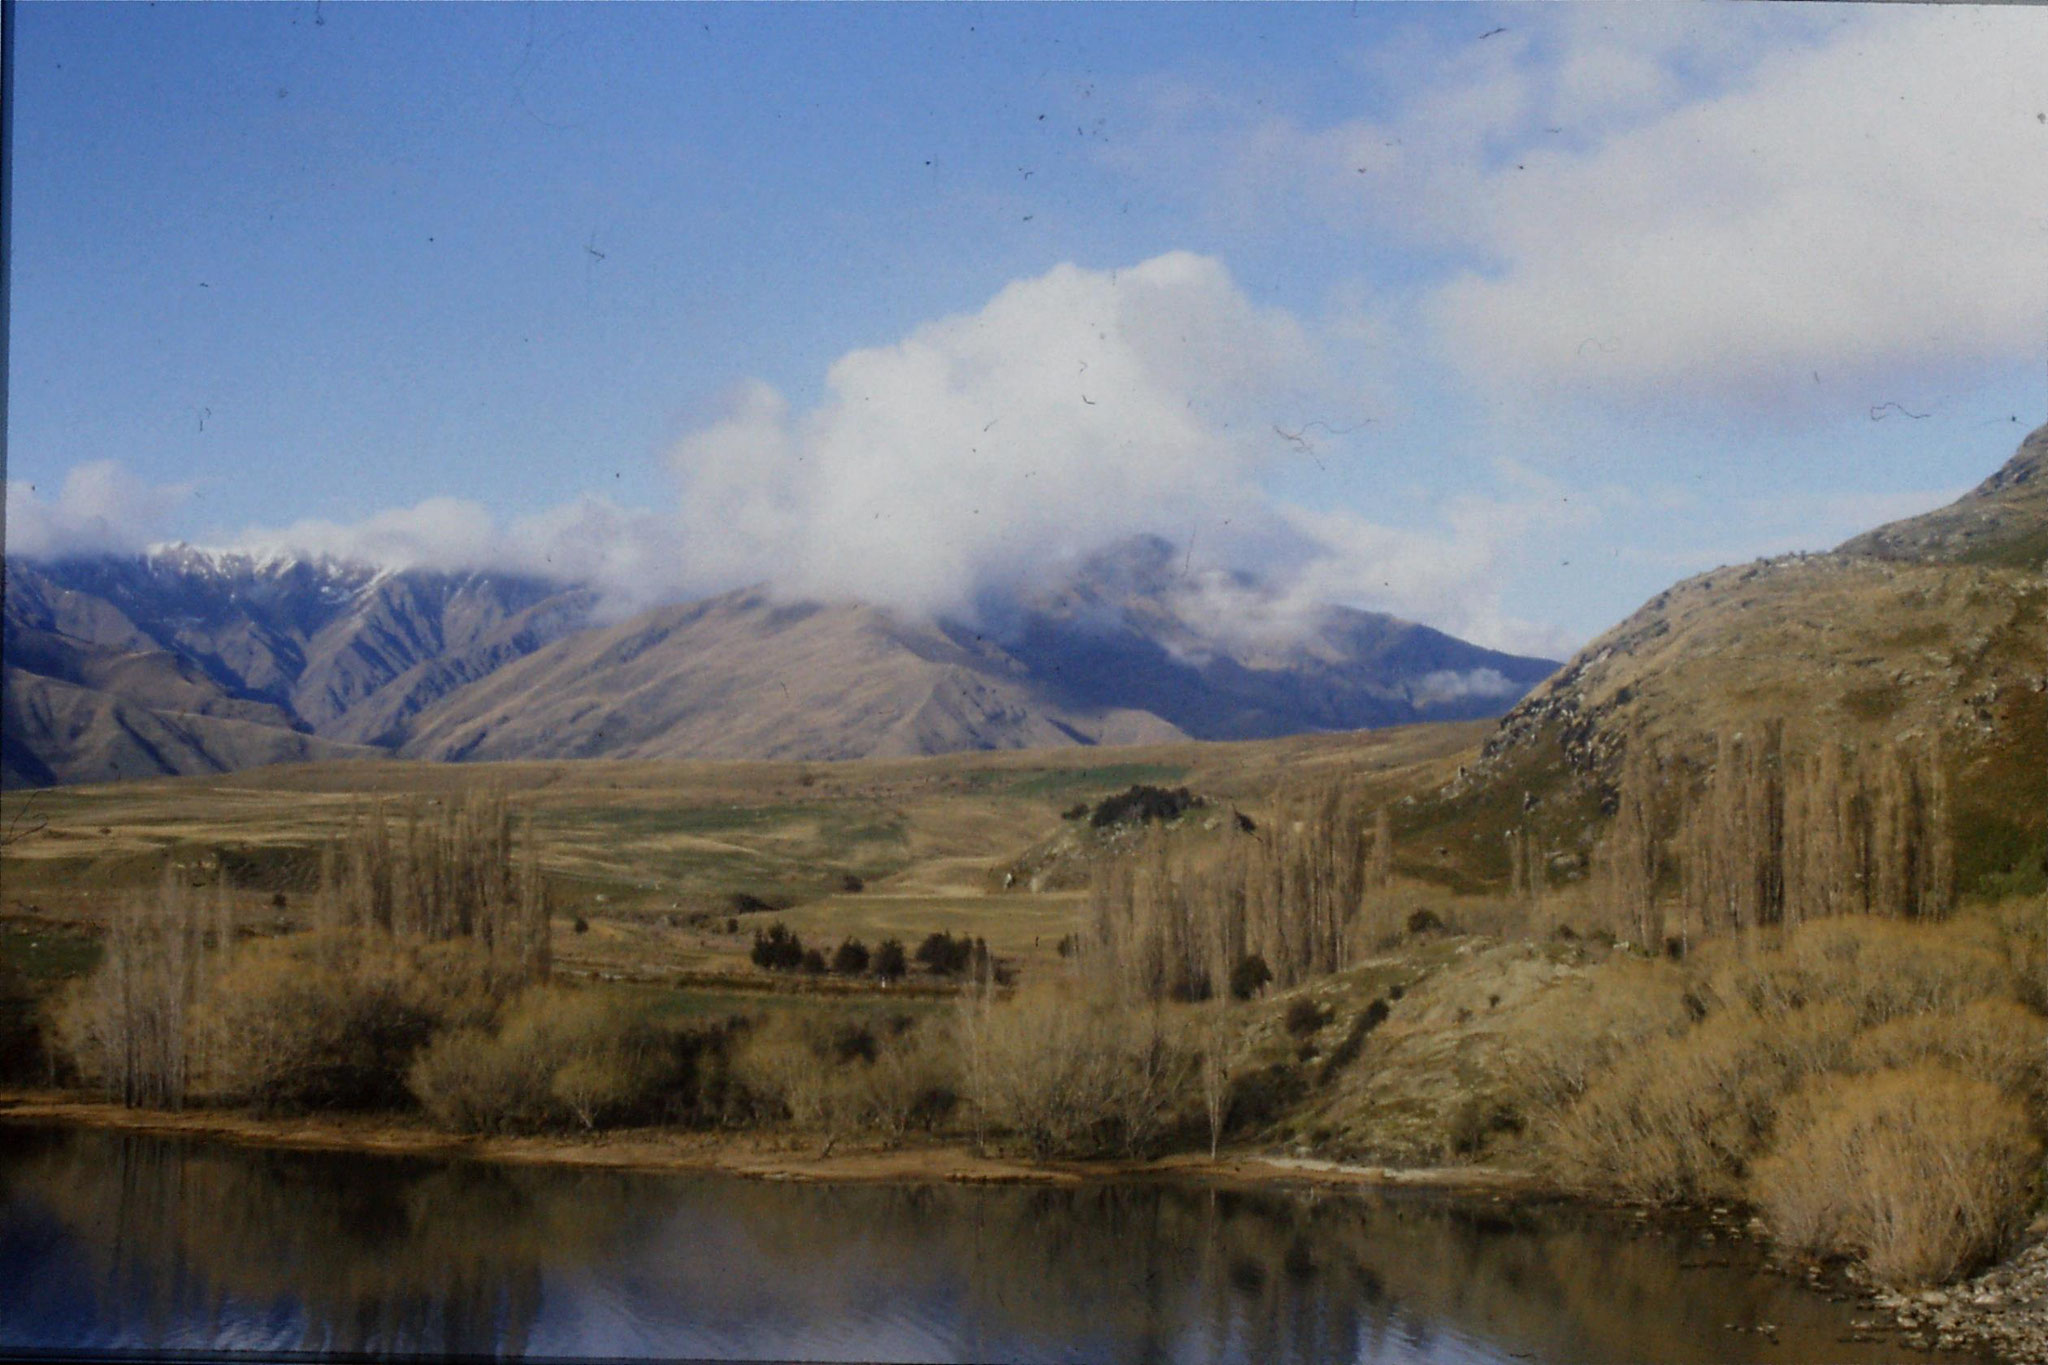 20/8/1990: 15: Wanaka Lake from Treble Lane car park